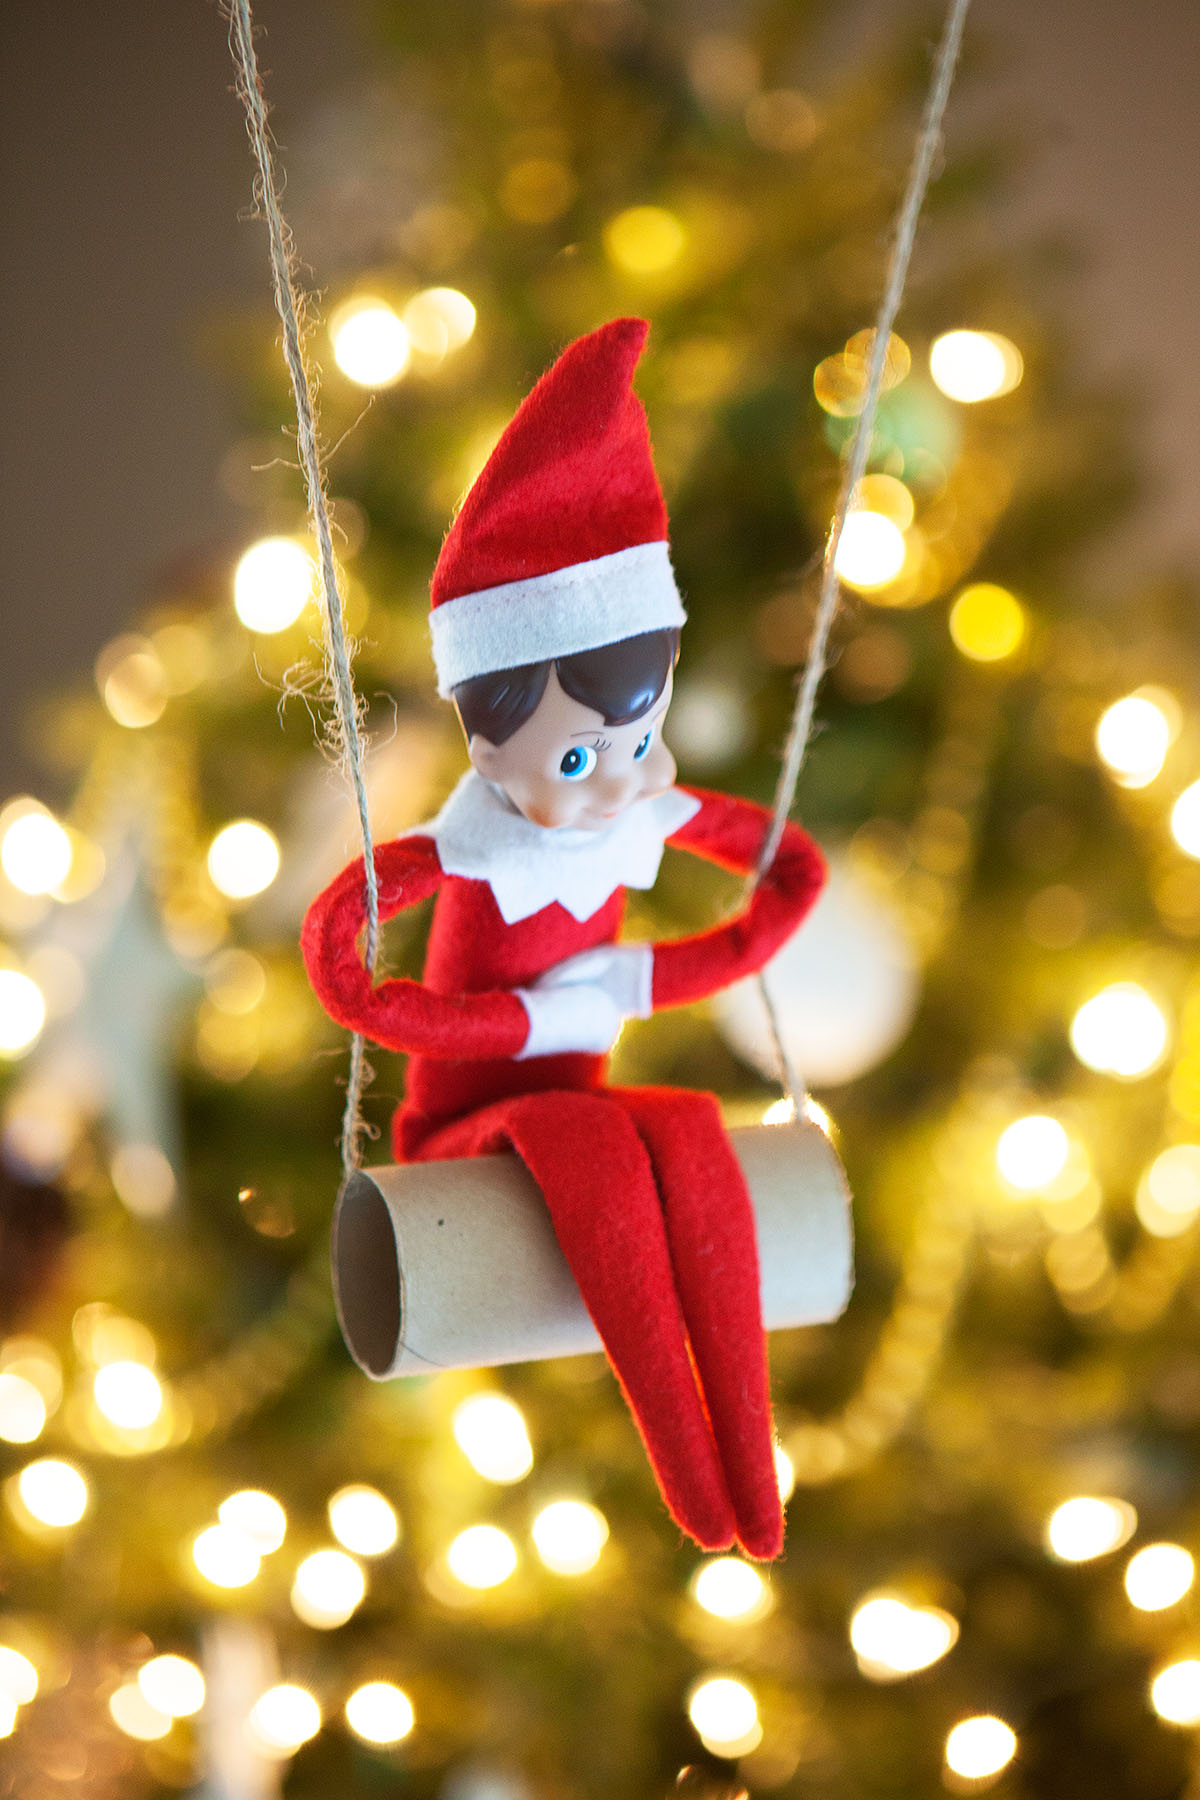 Elf swings by the tree.